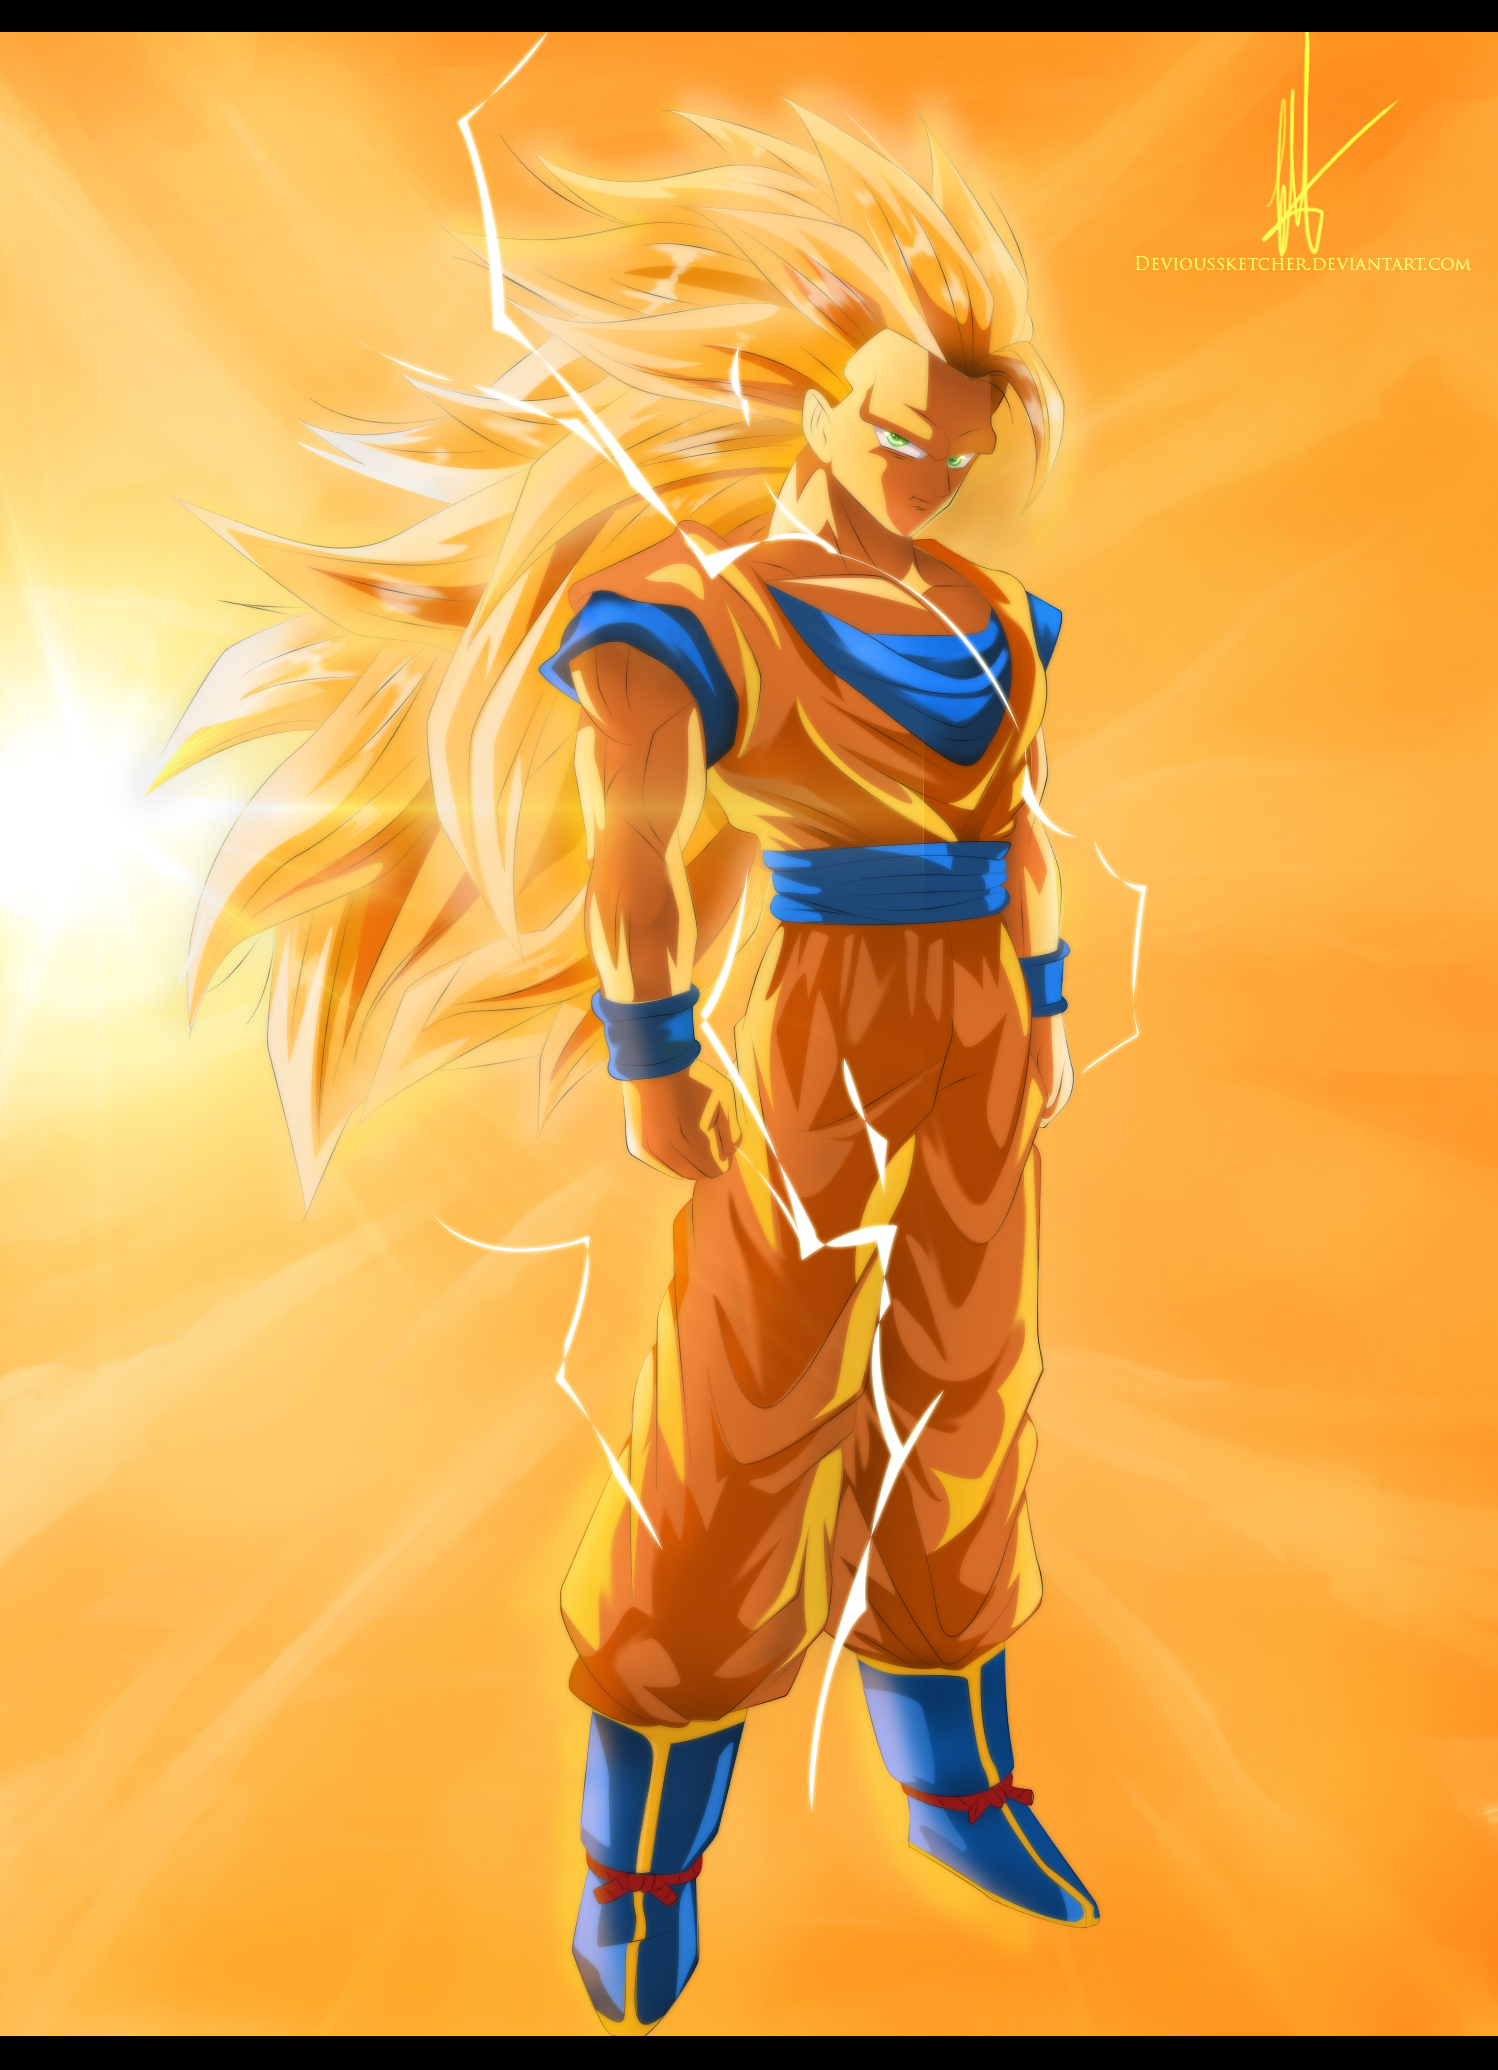 Super Saiyan 3 Goku By Devioussketcher On Deviantart